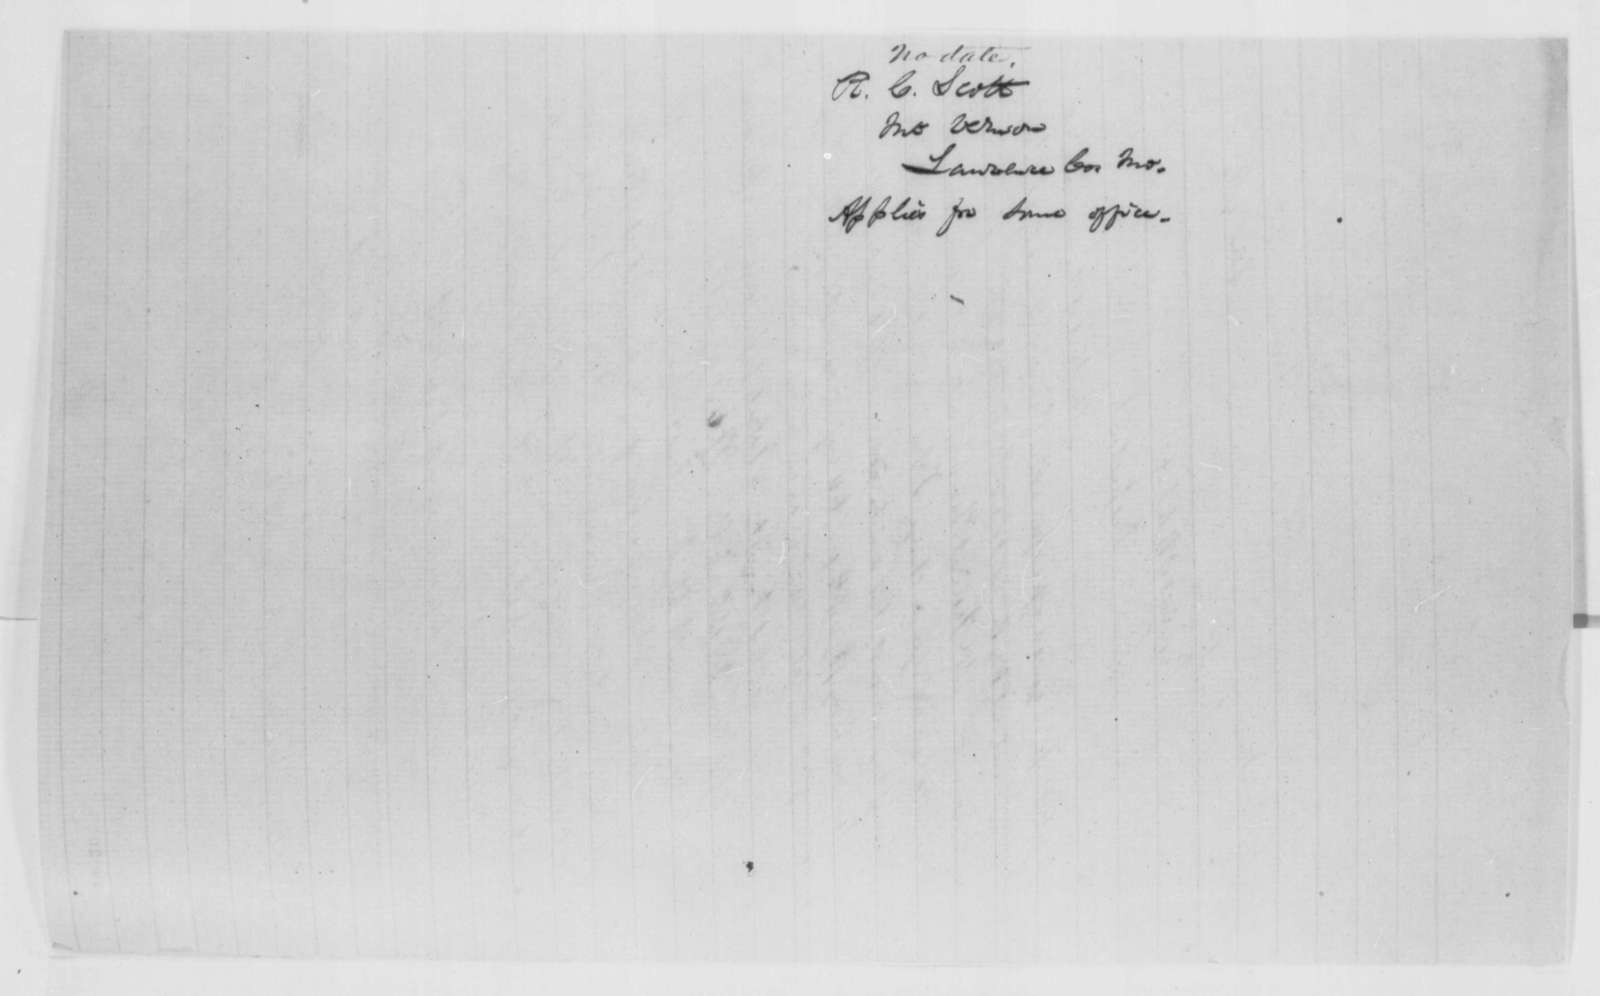 W. C. Scott to Abraham Lincoln,  ND  (Seeks office)